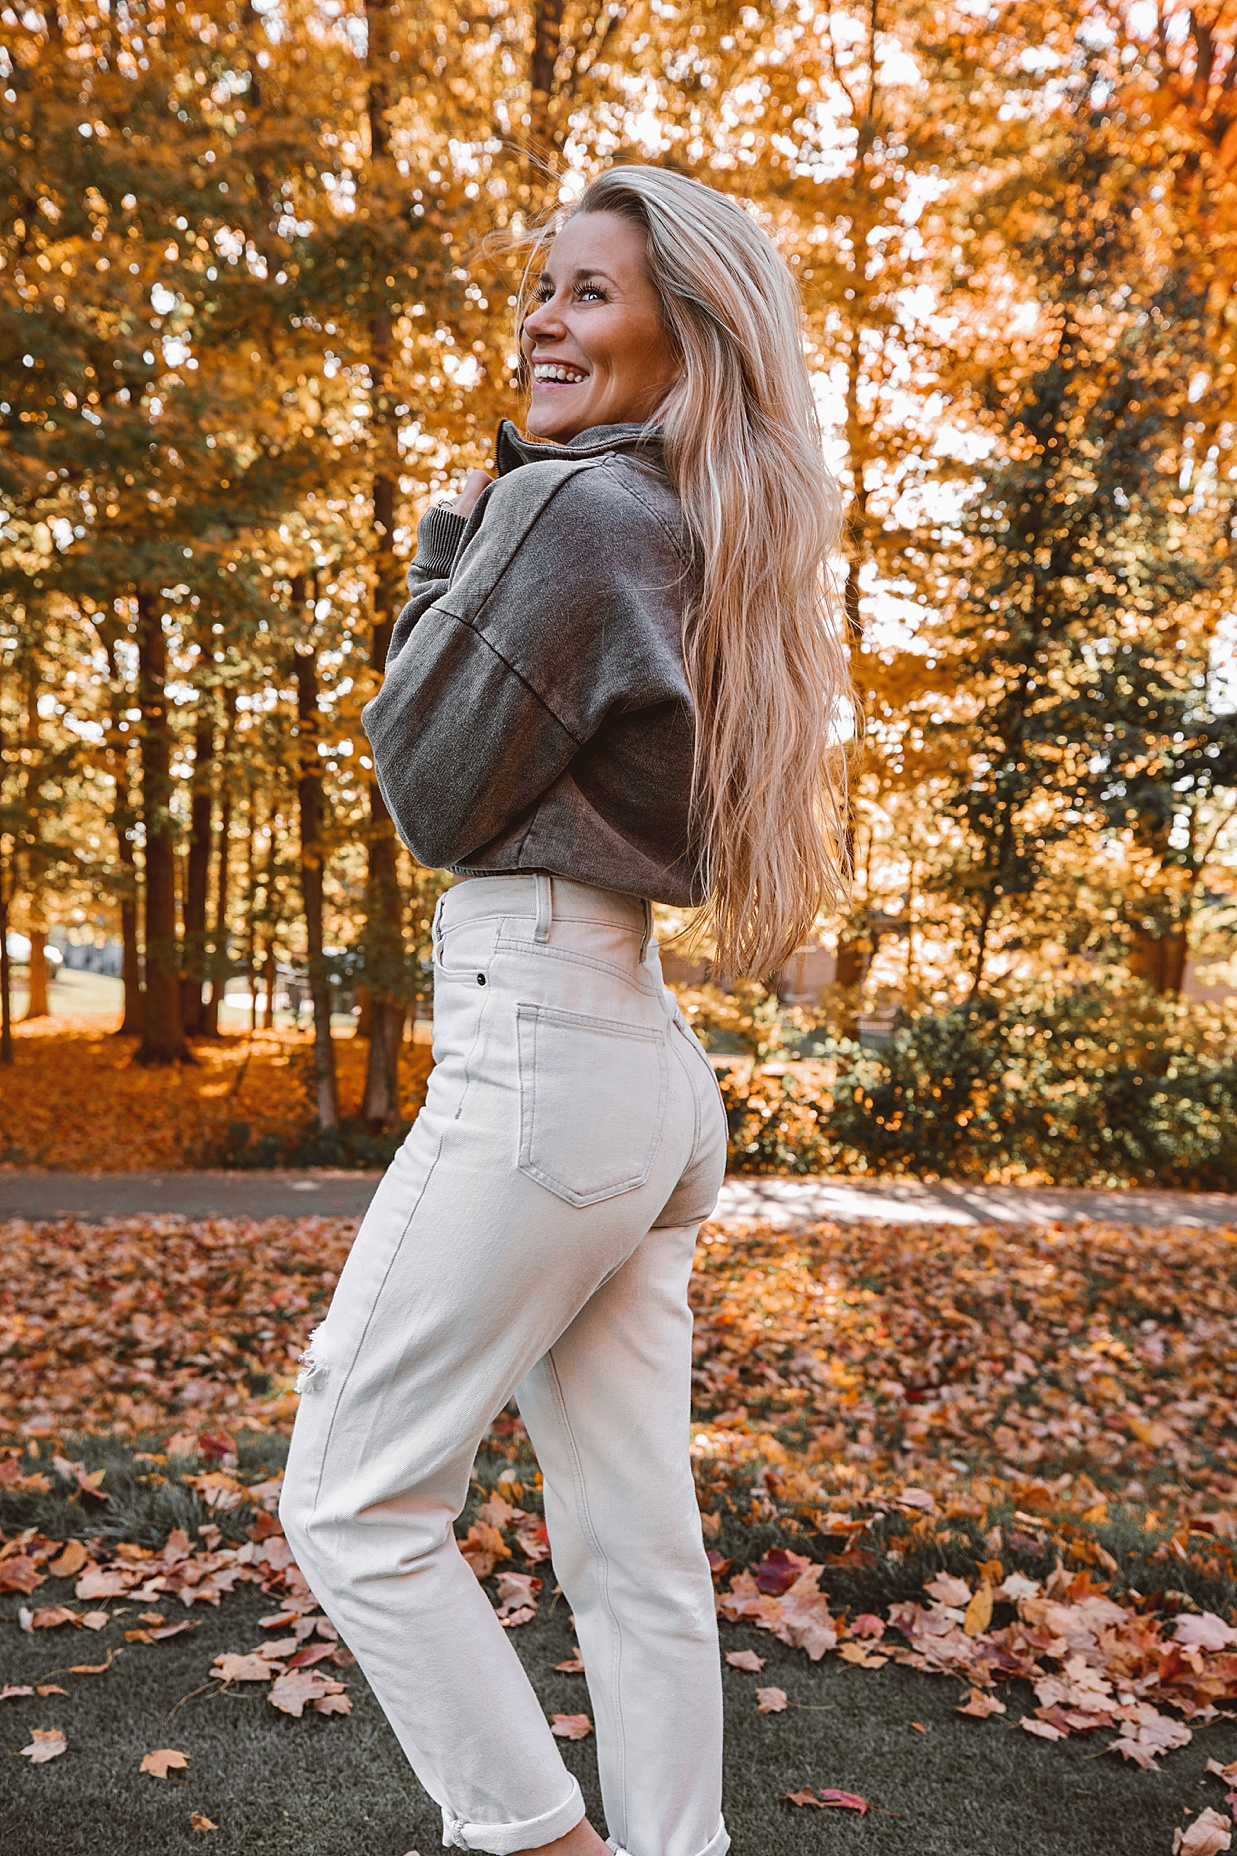 olivia rink, fall outfit, fall fashion, fall outfit ideas, casual fall outfit, cozy fall outfit, topshop outfit, topshop, olivia rink outfit, petite fashion, petite outfit, petite, cropped sweater, mom jeans, fall in kentucky